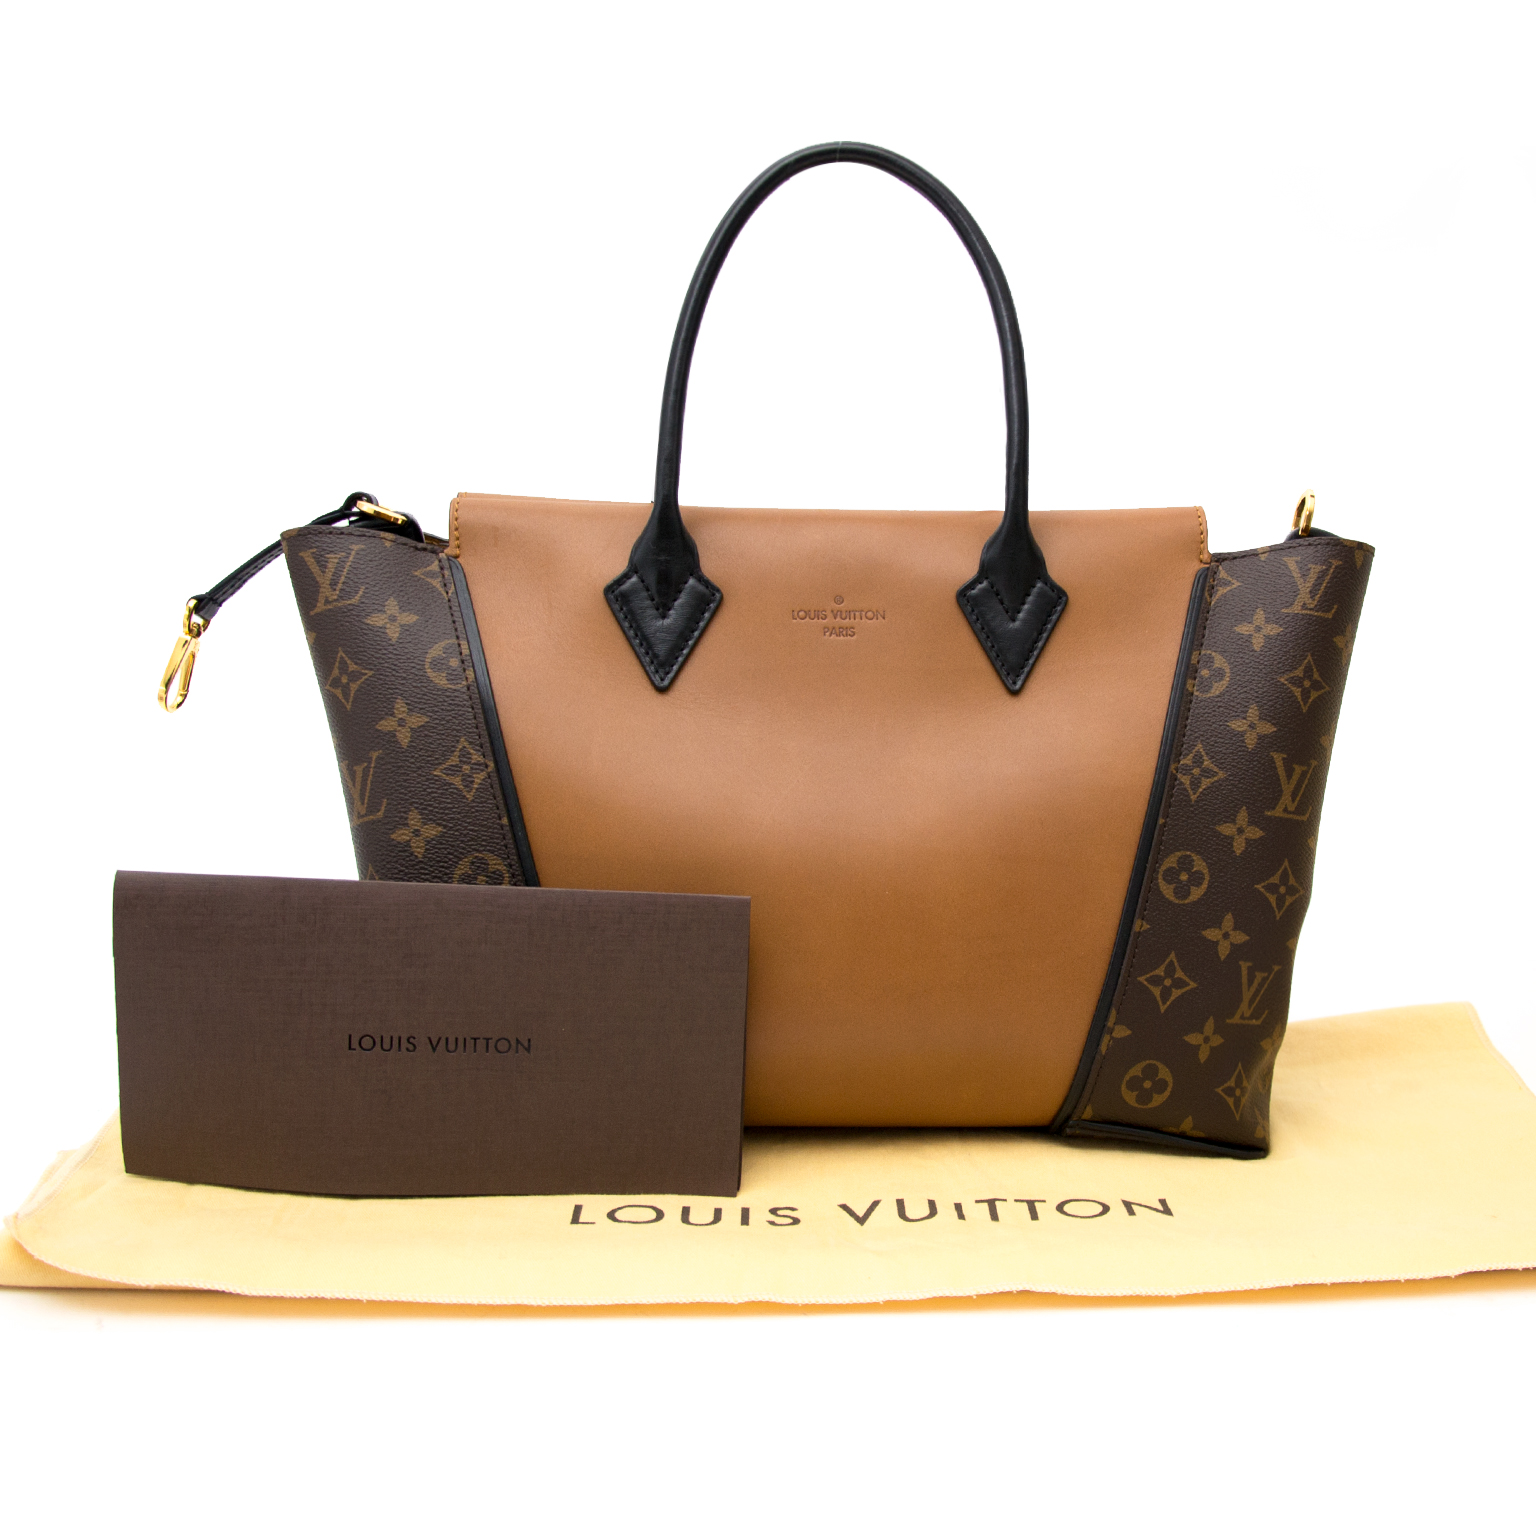 shop safe online secondhand Louis Vuitton Limited W Cuir Orfevre Tote Noisette PM Bag  online at the best price